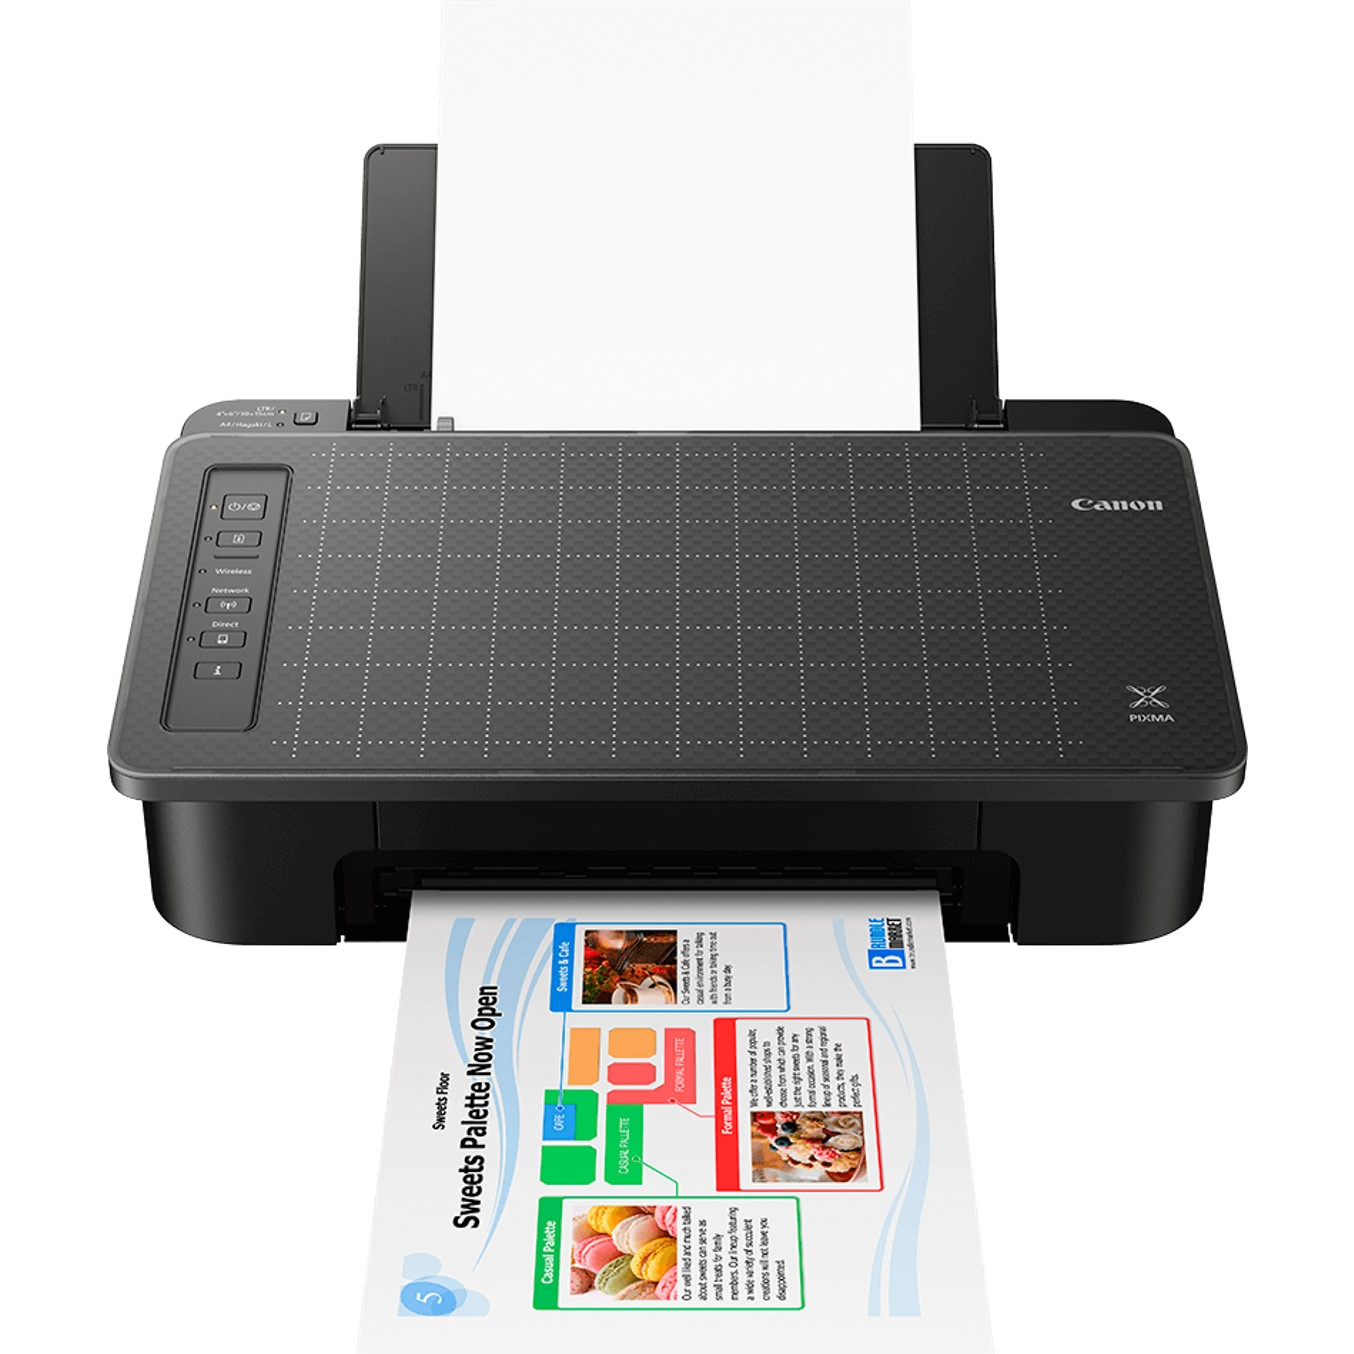 IMPRESORA CANON TS305 INYECCION COLOR PIXMA A4- 7 7PPM- 4800X1200PPP- WIFI- USB- BLUETOOTh